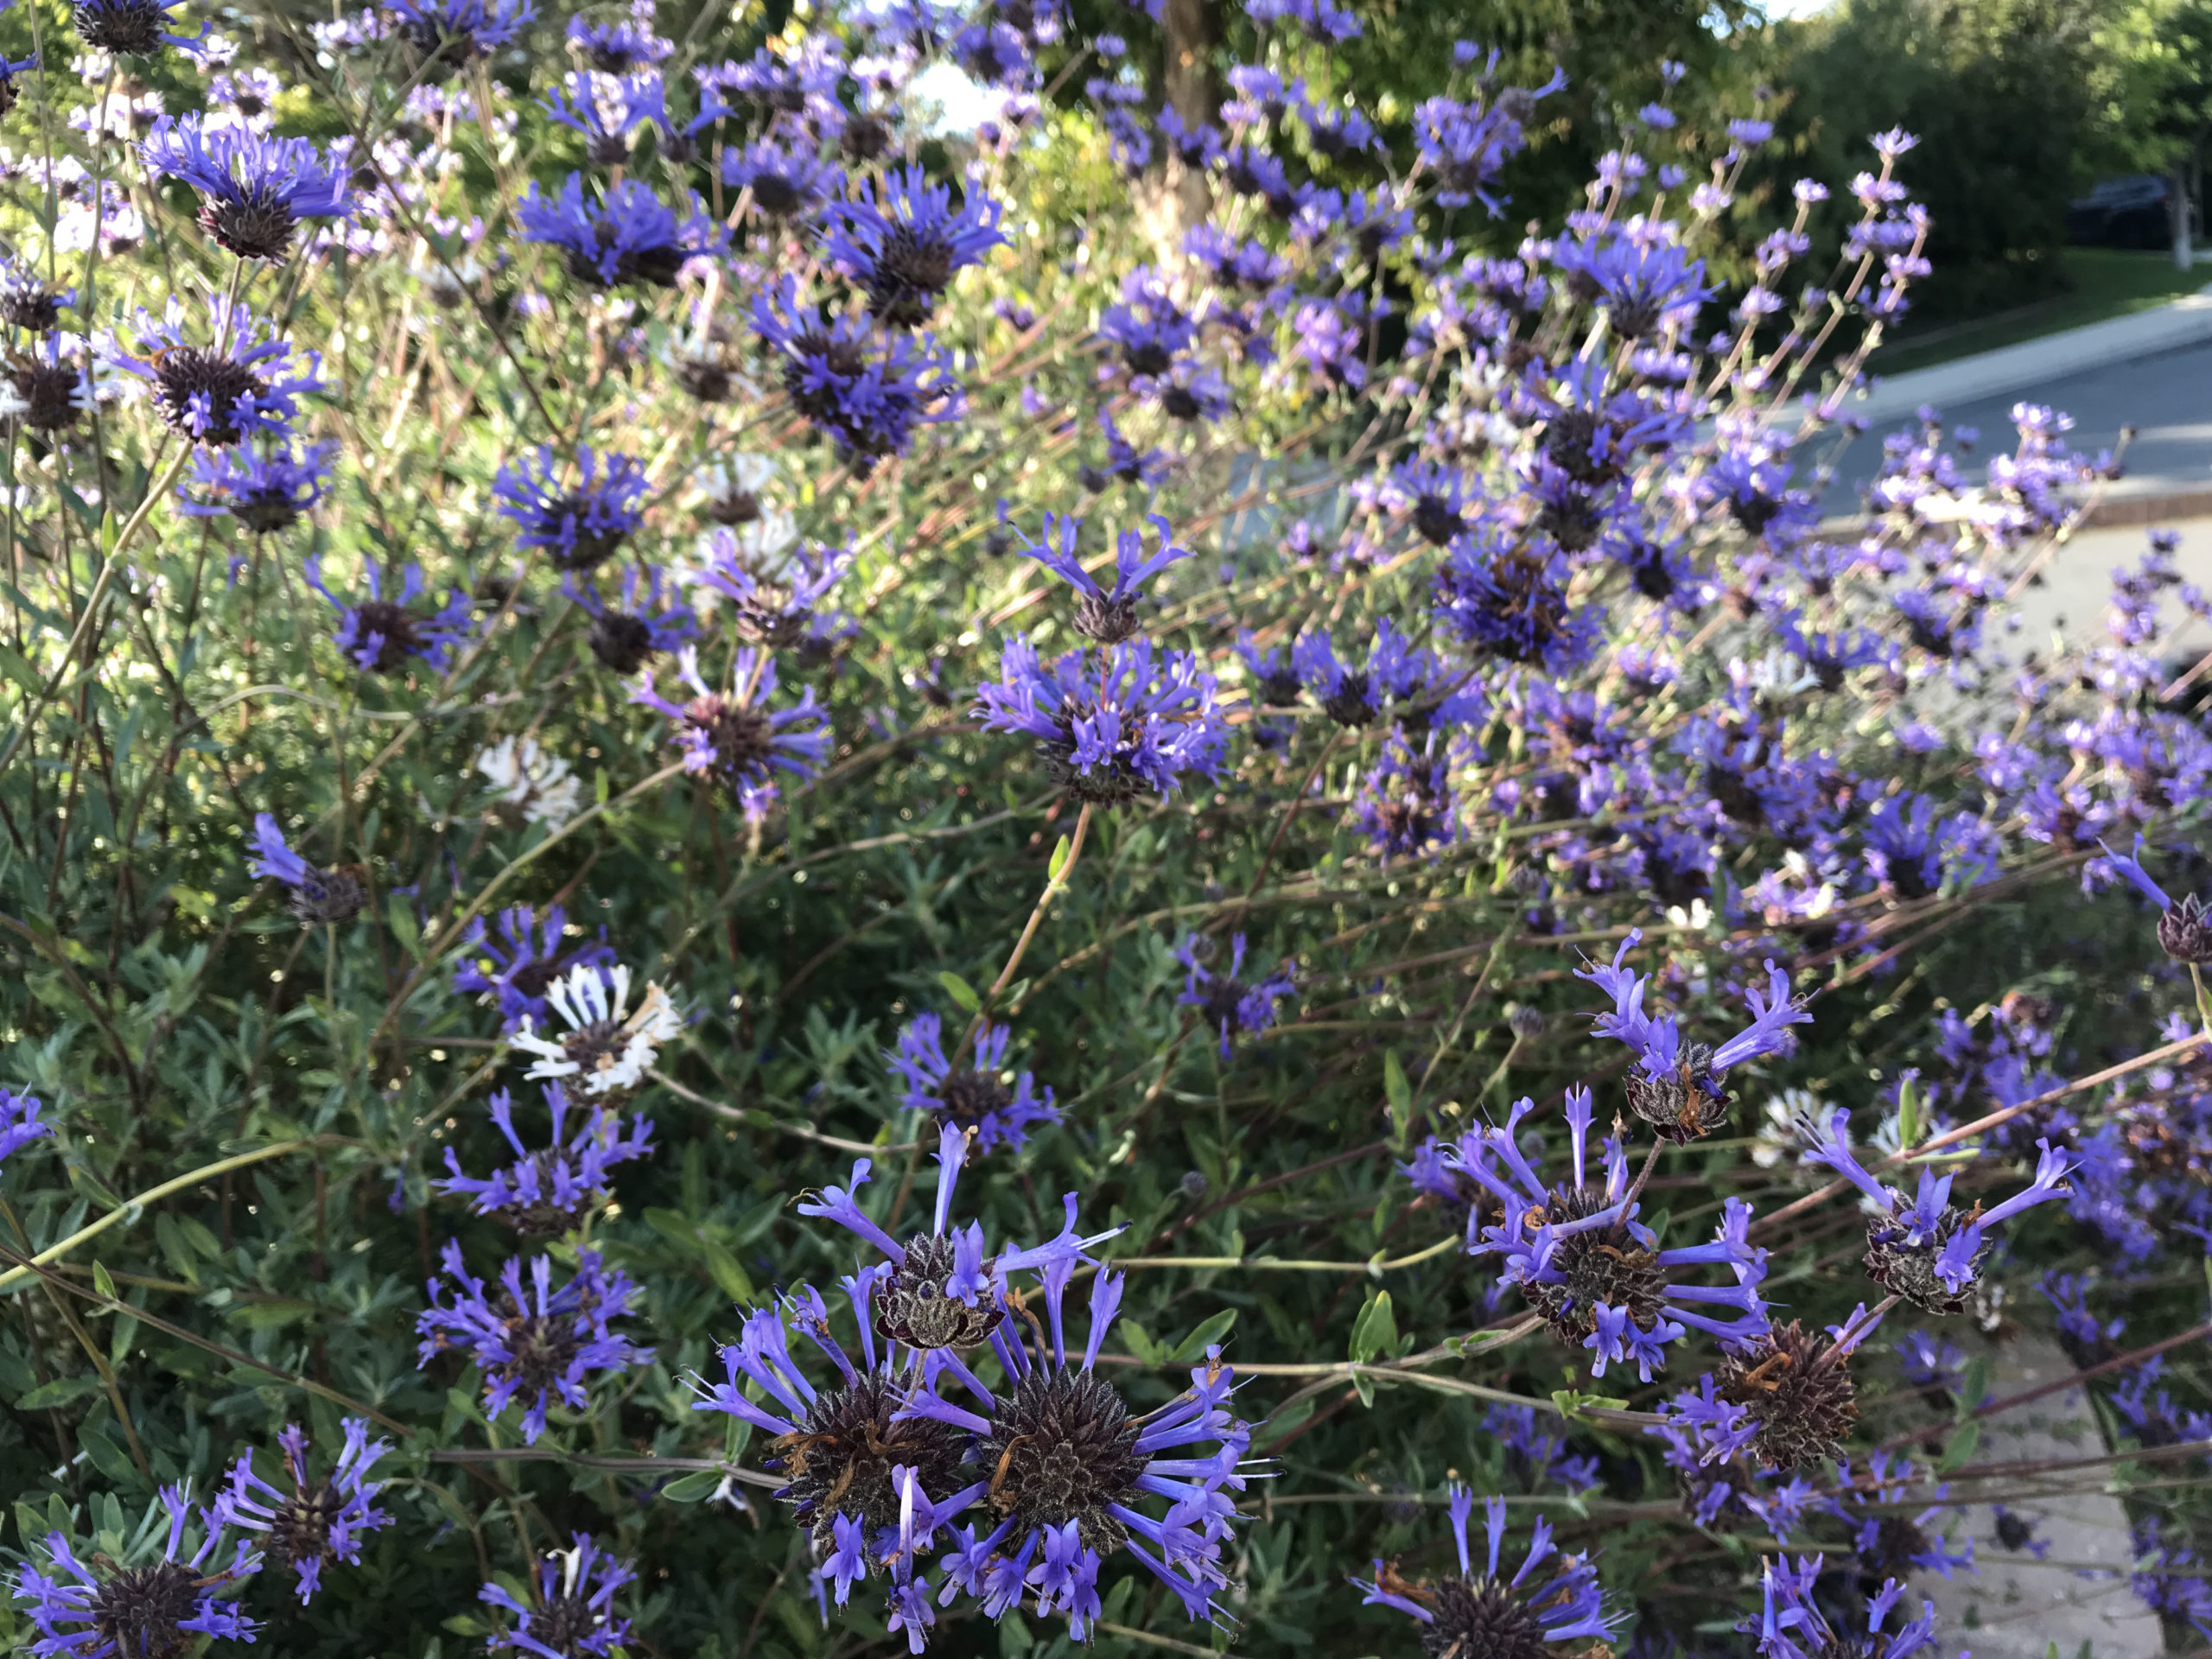 Photo of the Cleveland Sage shrubs that I write about in this post